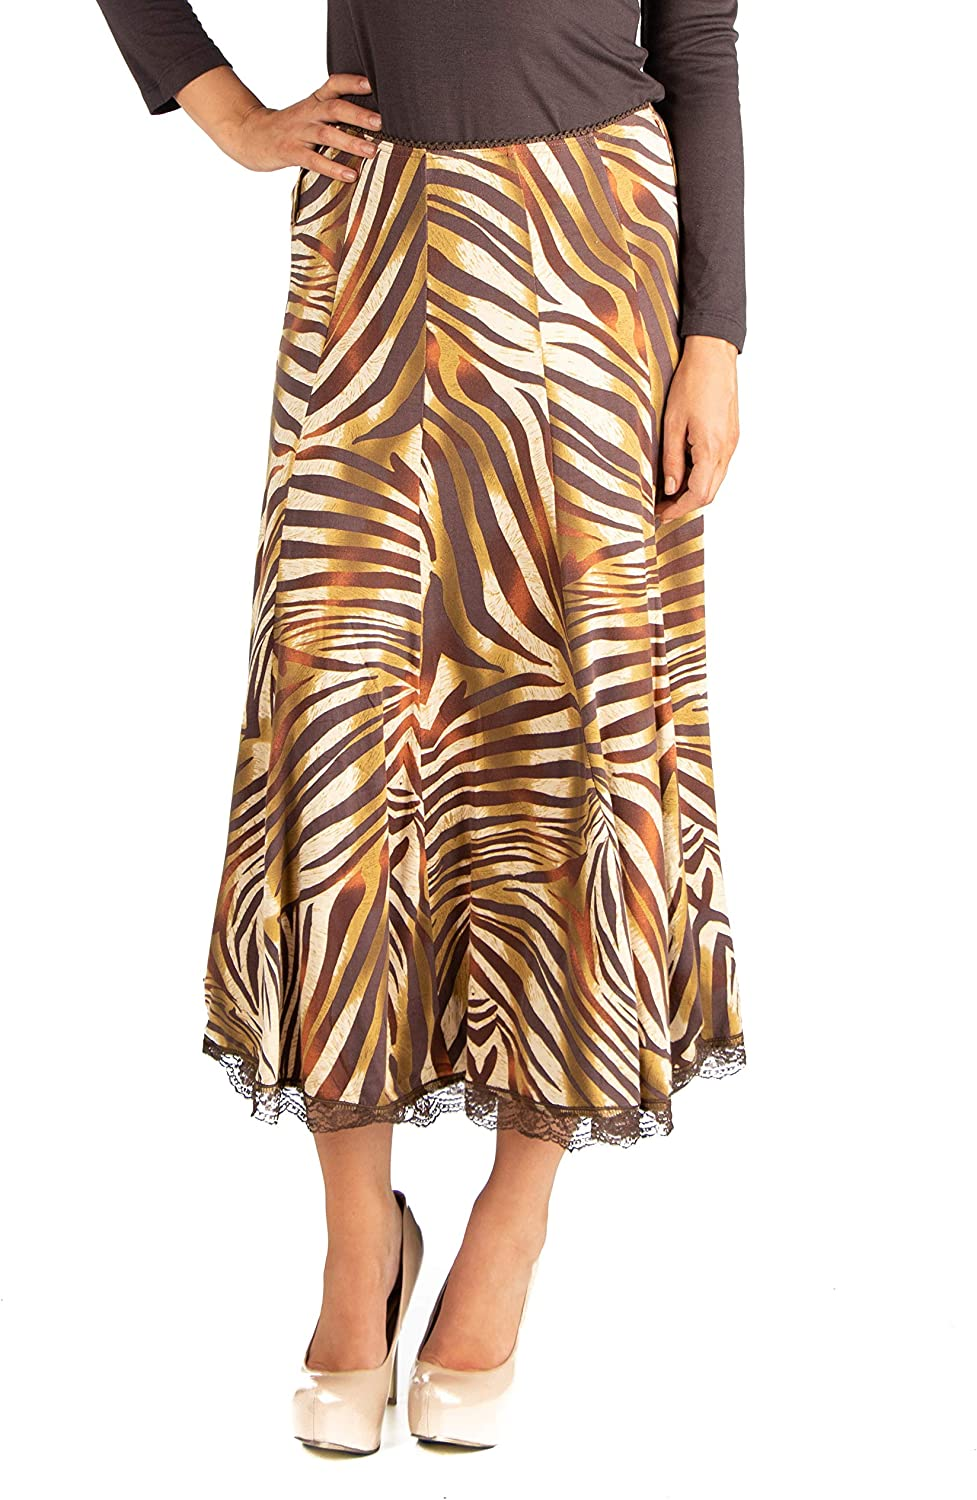 24seven Comfort Apparel Women's Clothes Zebra Print Paneled Midi Skirt - Made in USA - Large - Brown/Beige